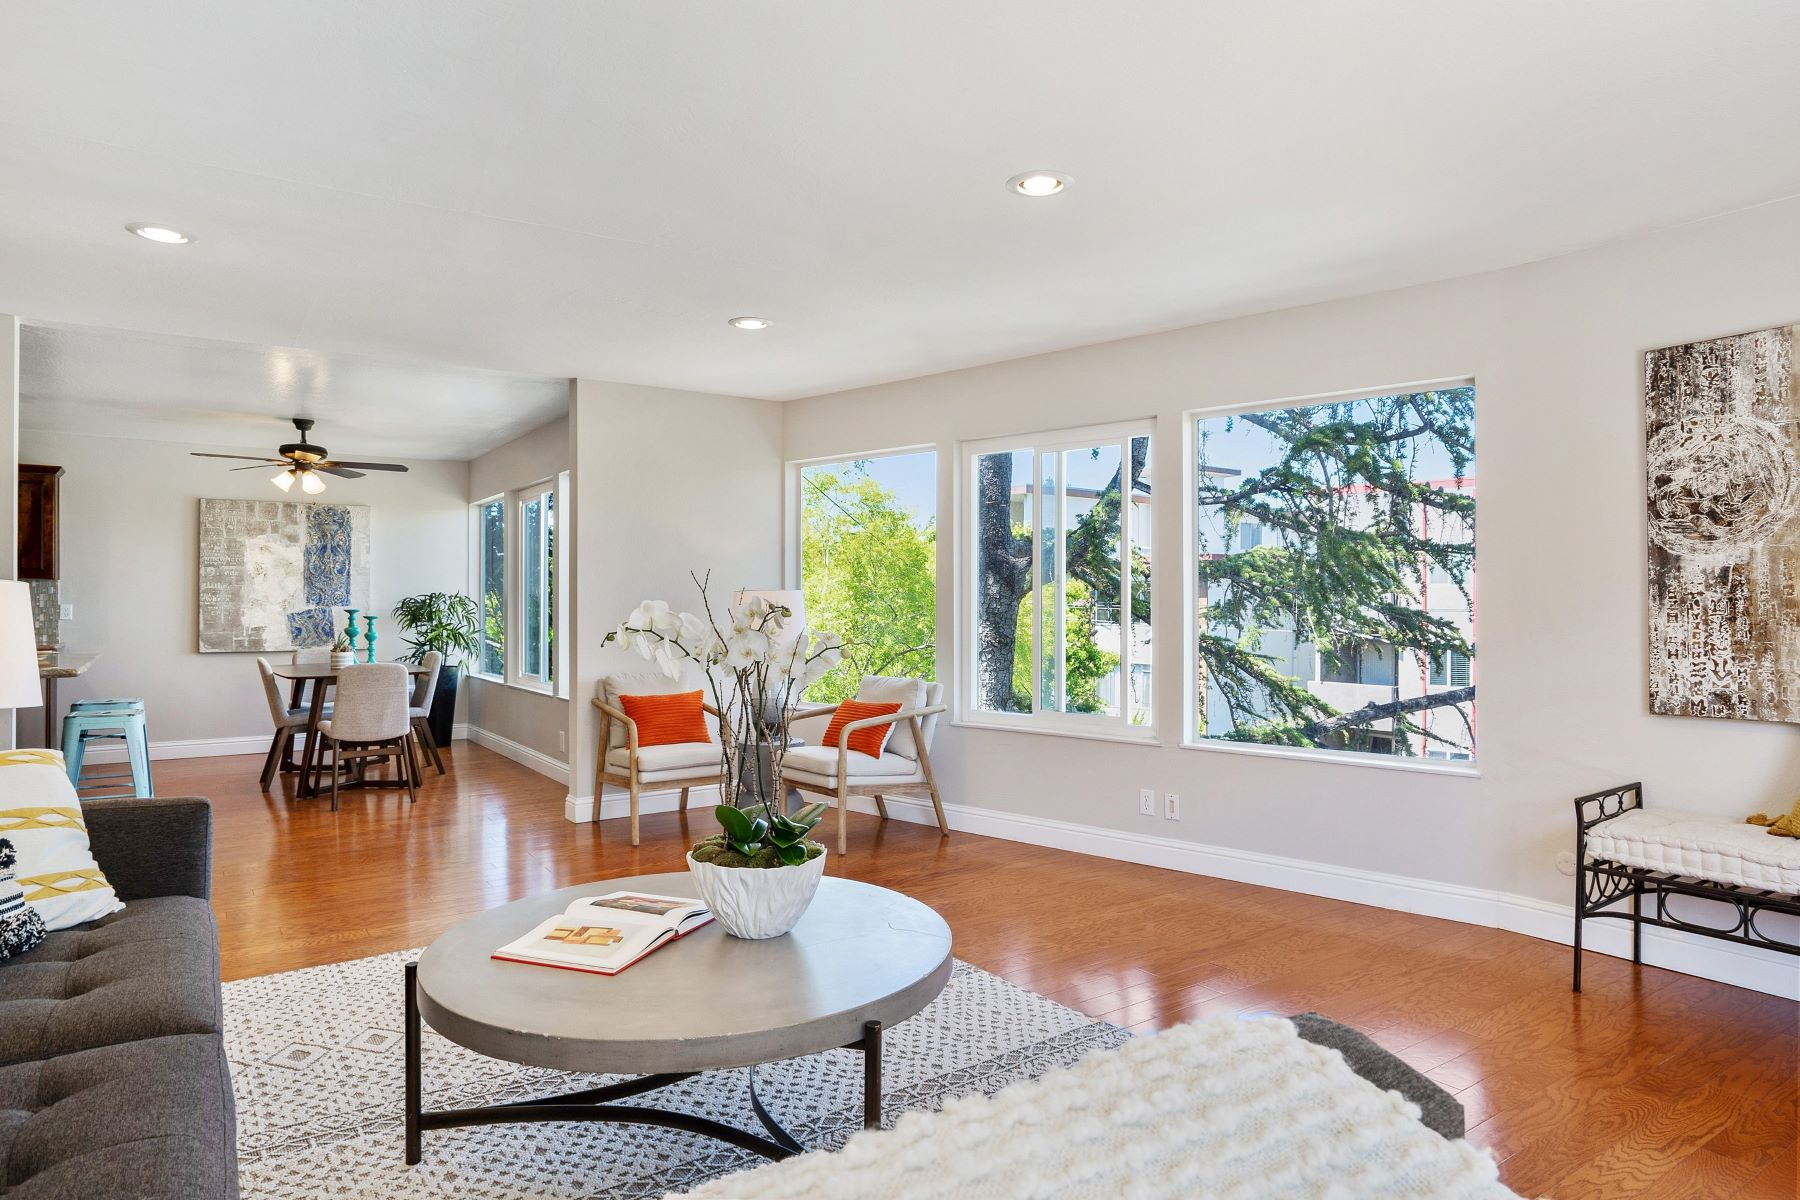 Single Family Homes for Sale at Light Filled And Spacious Corner Unit 250 Montecito Avenue #301 Oakland, California 94610 United States